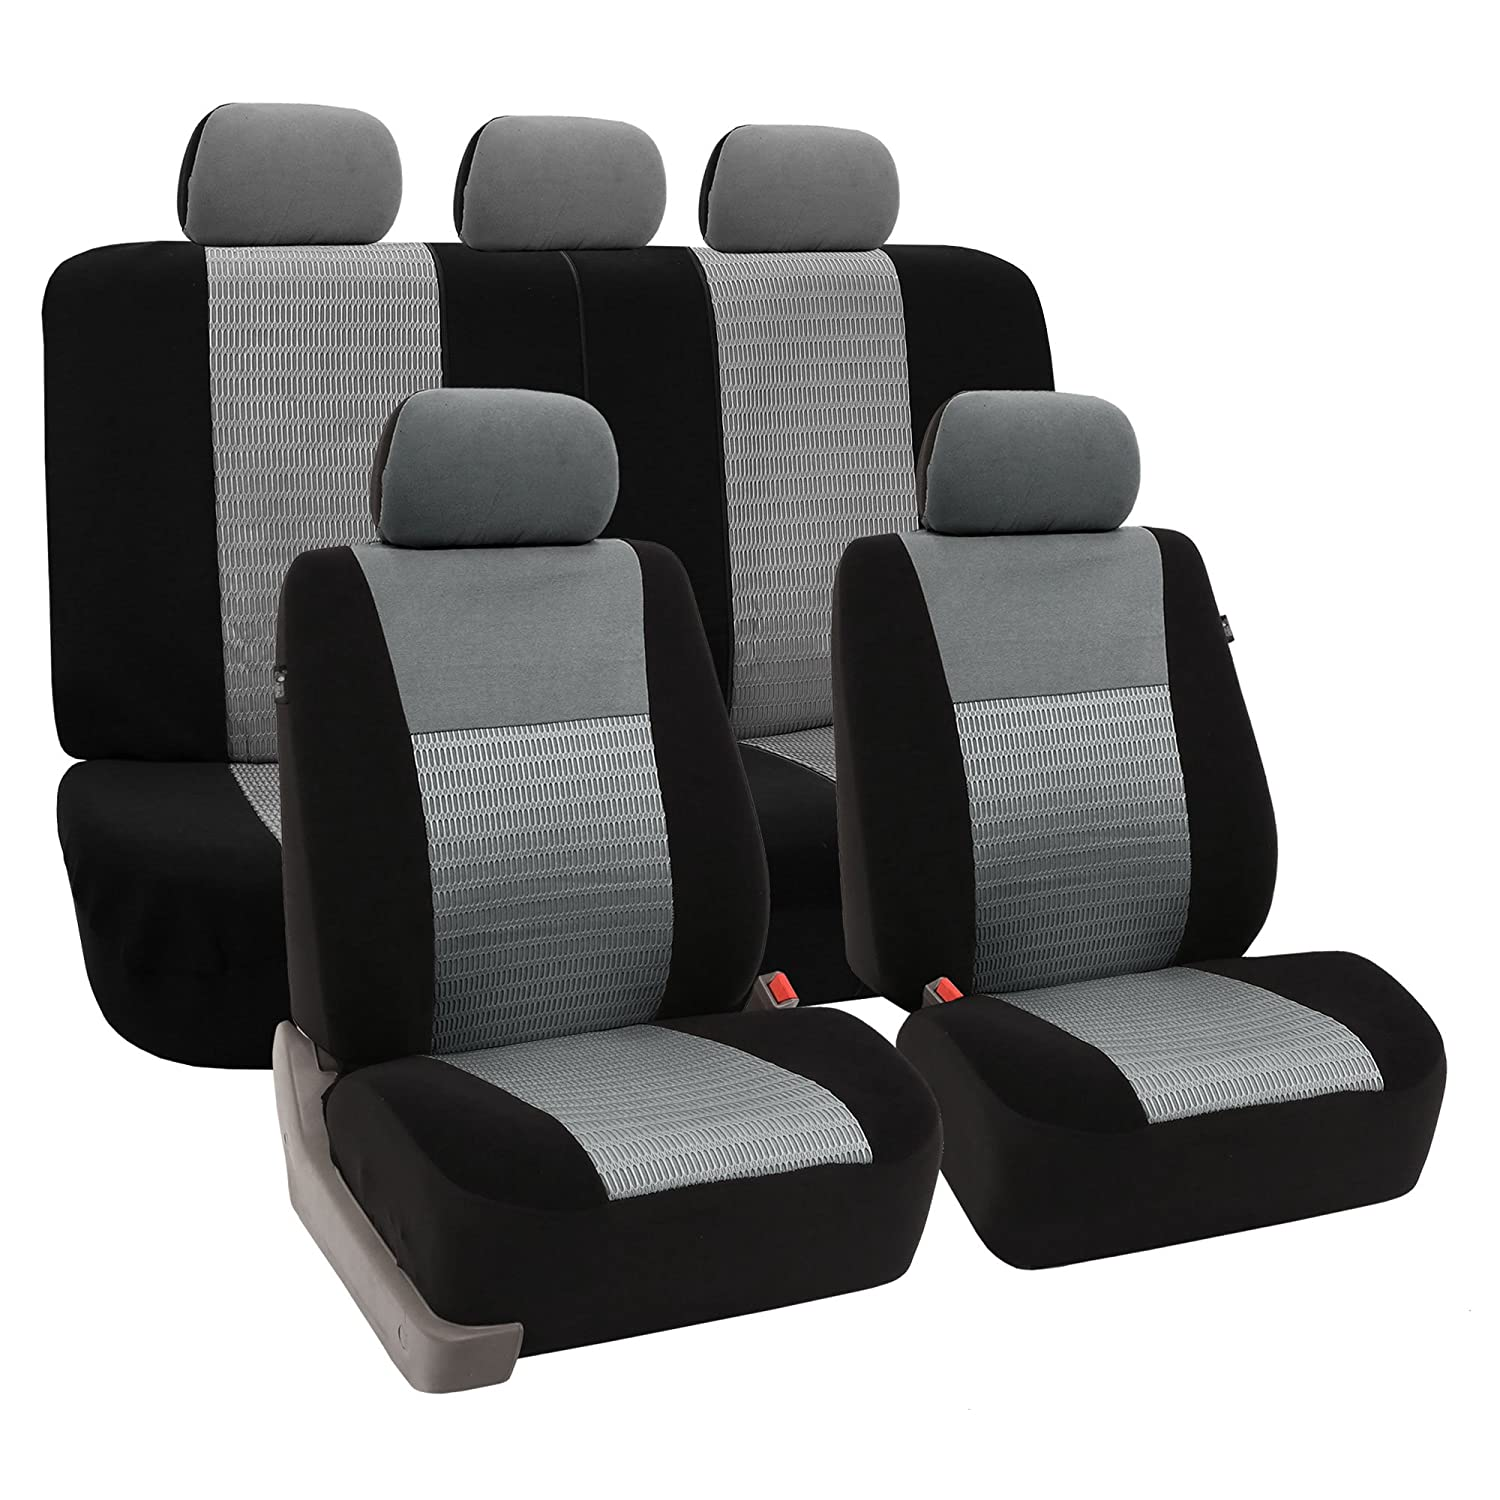 Amazon FH FB060 Trendy Elegance Car Seat Covers Airbag Compatible And Split Bench Gray Black Color Corresponds To Model No